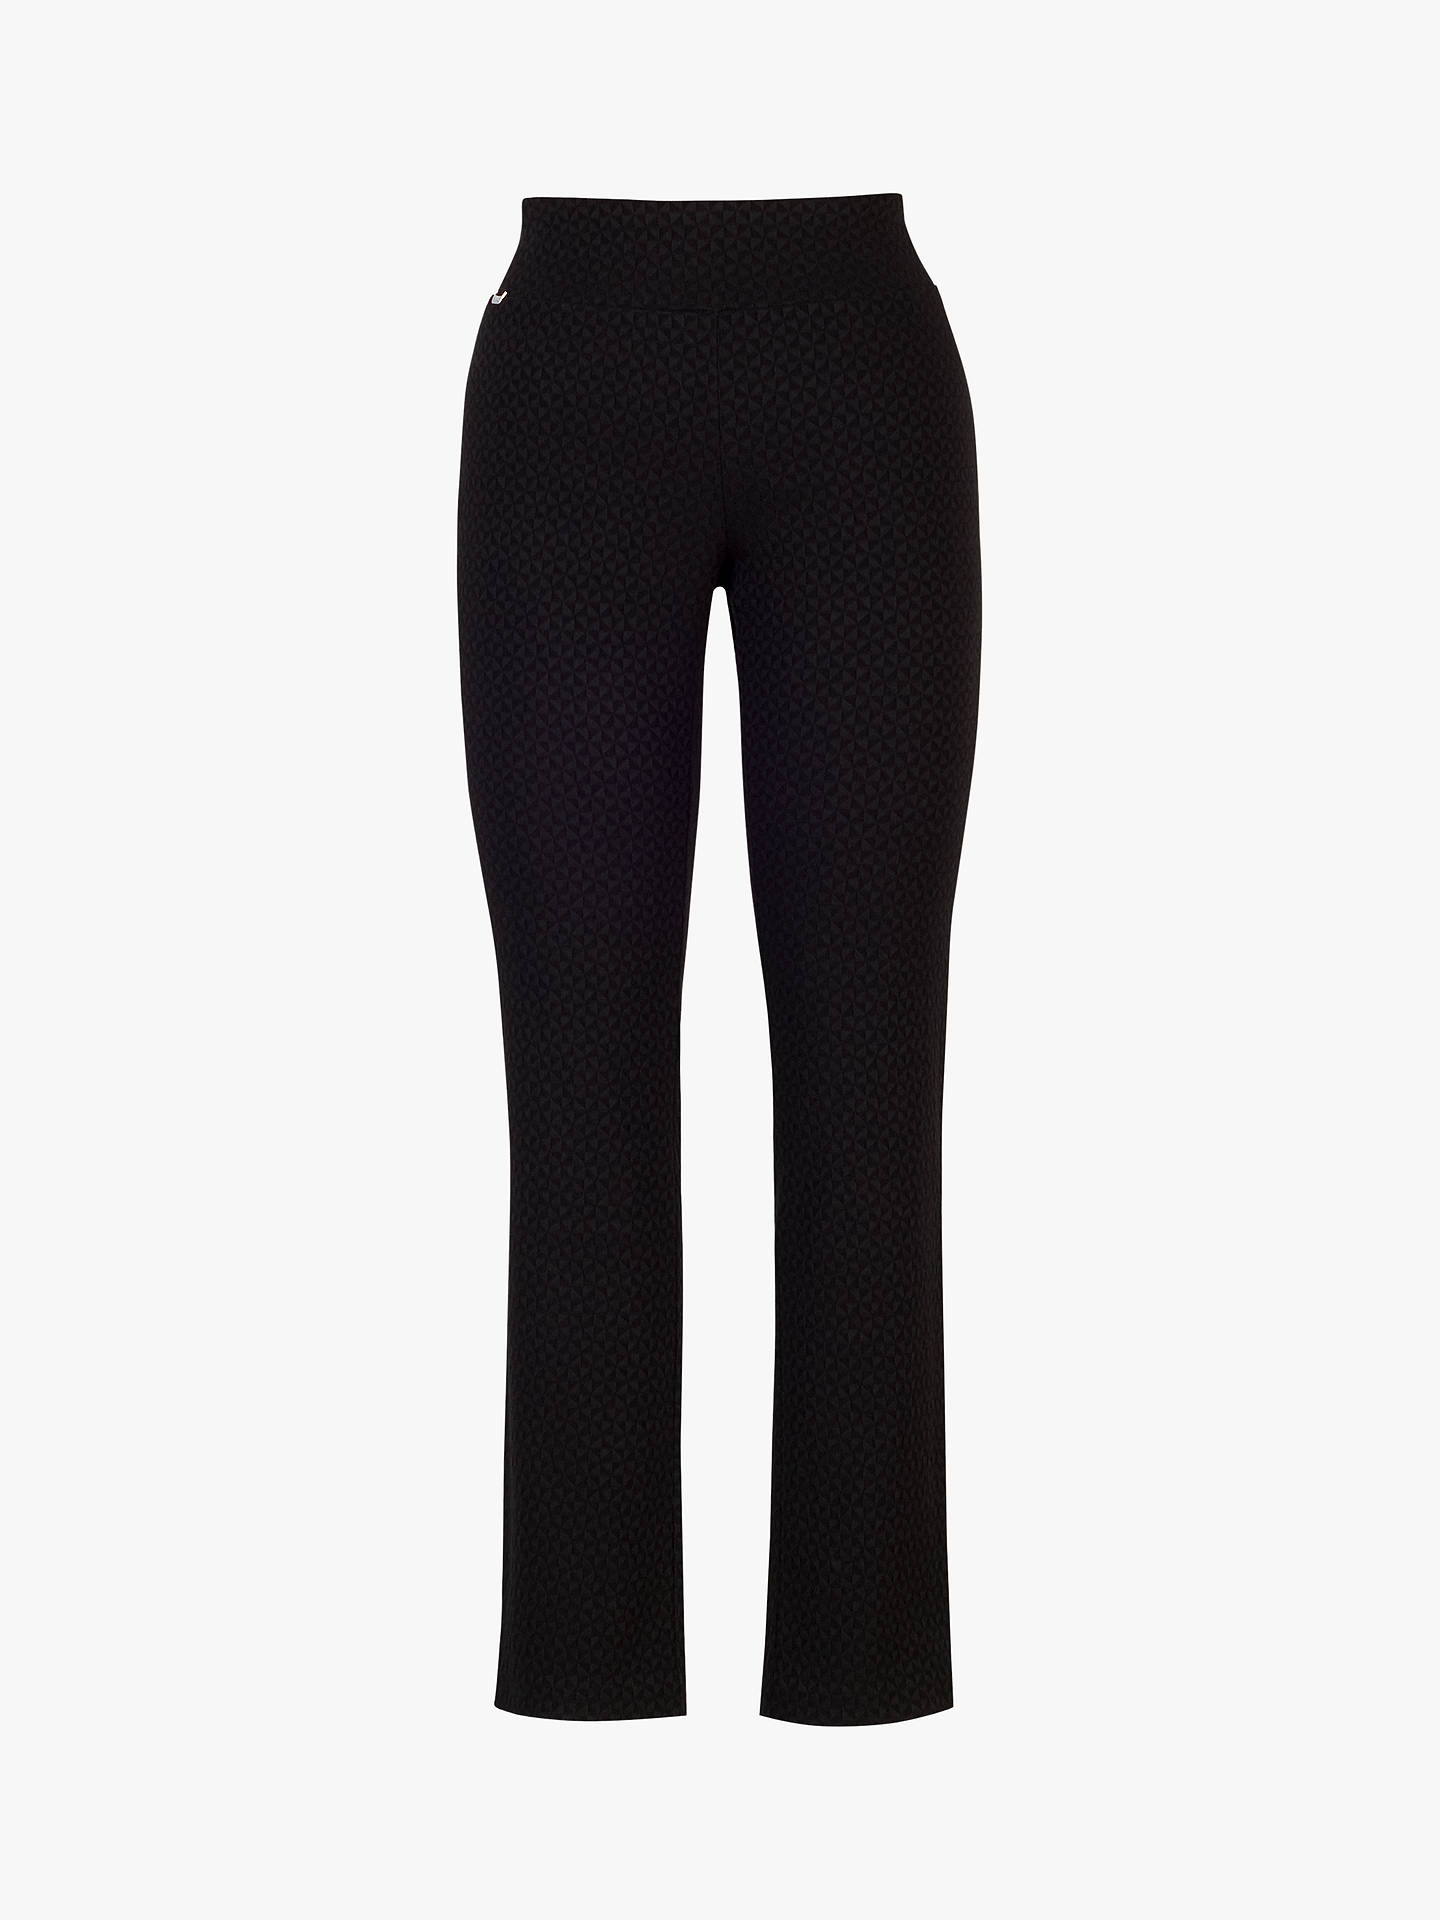 BuyChesca Black Jacquard Tailored Trousers, Black, 12 Online at johnlewis.com